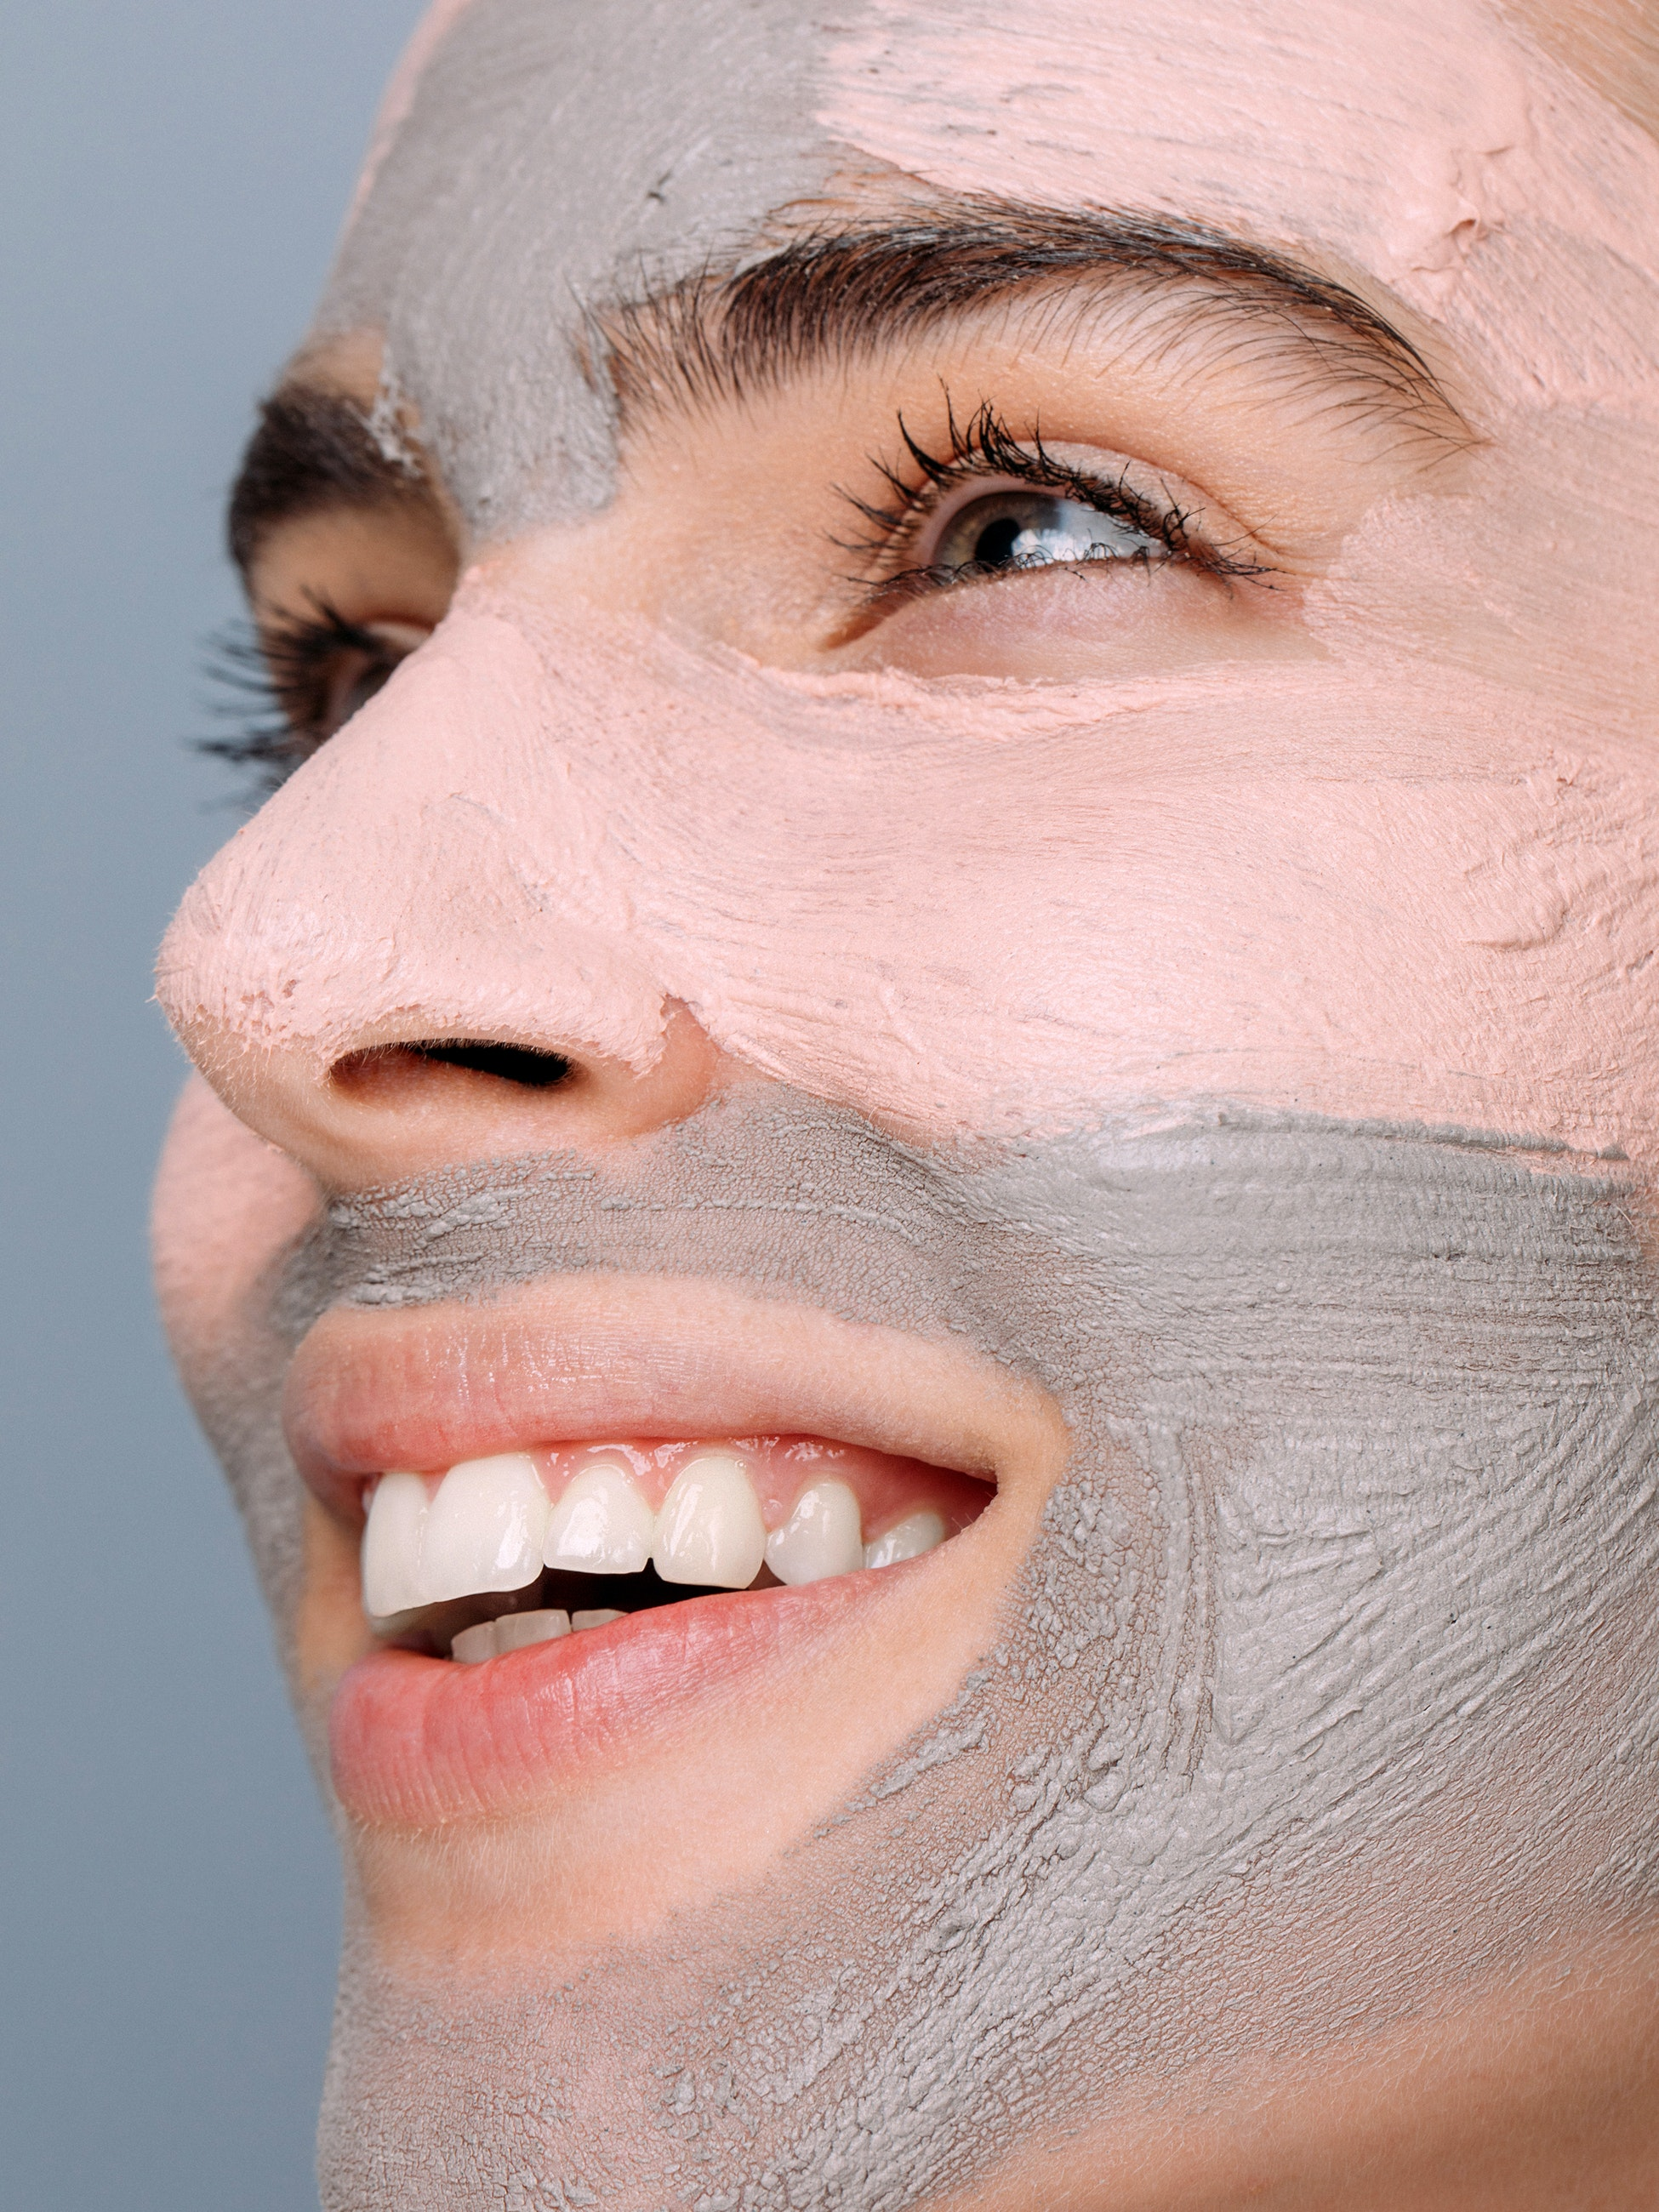 skincare with face mask close up to womans T zone  | Spotlyte